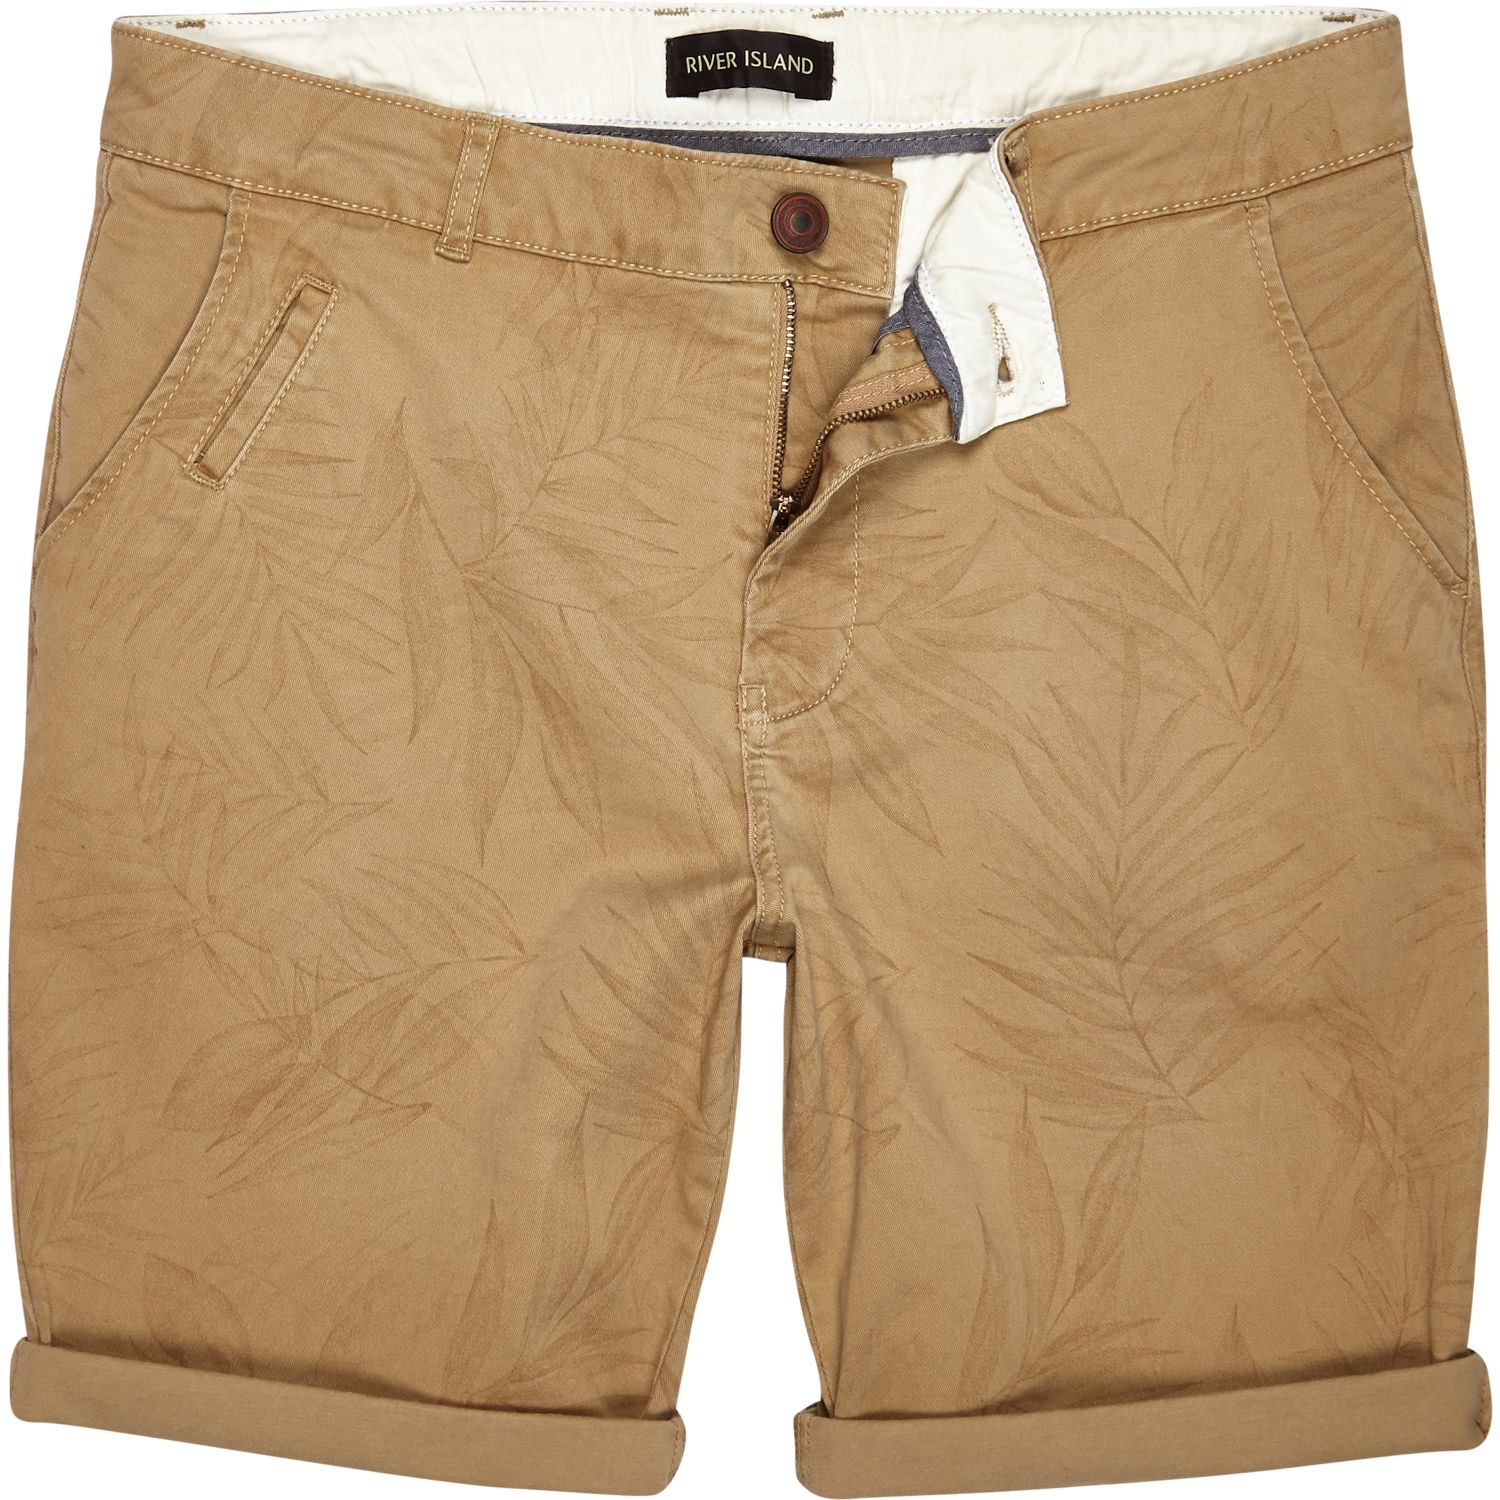 River Island Tan Faded Leaf Print Chino Shorts in Brown